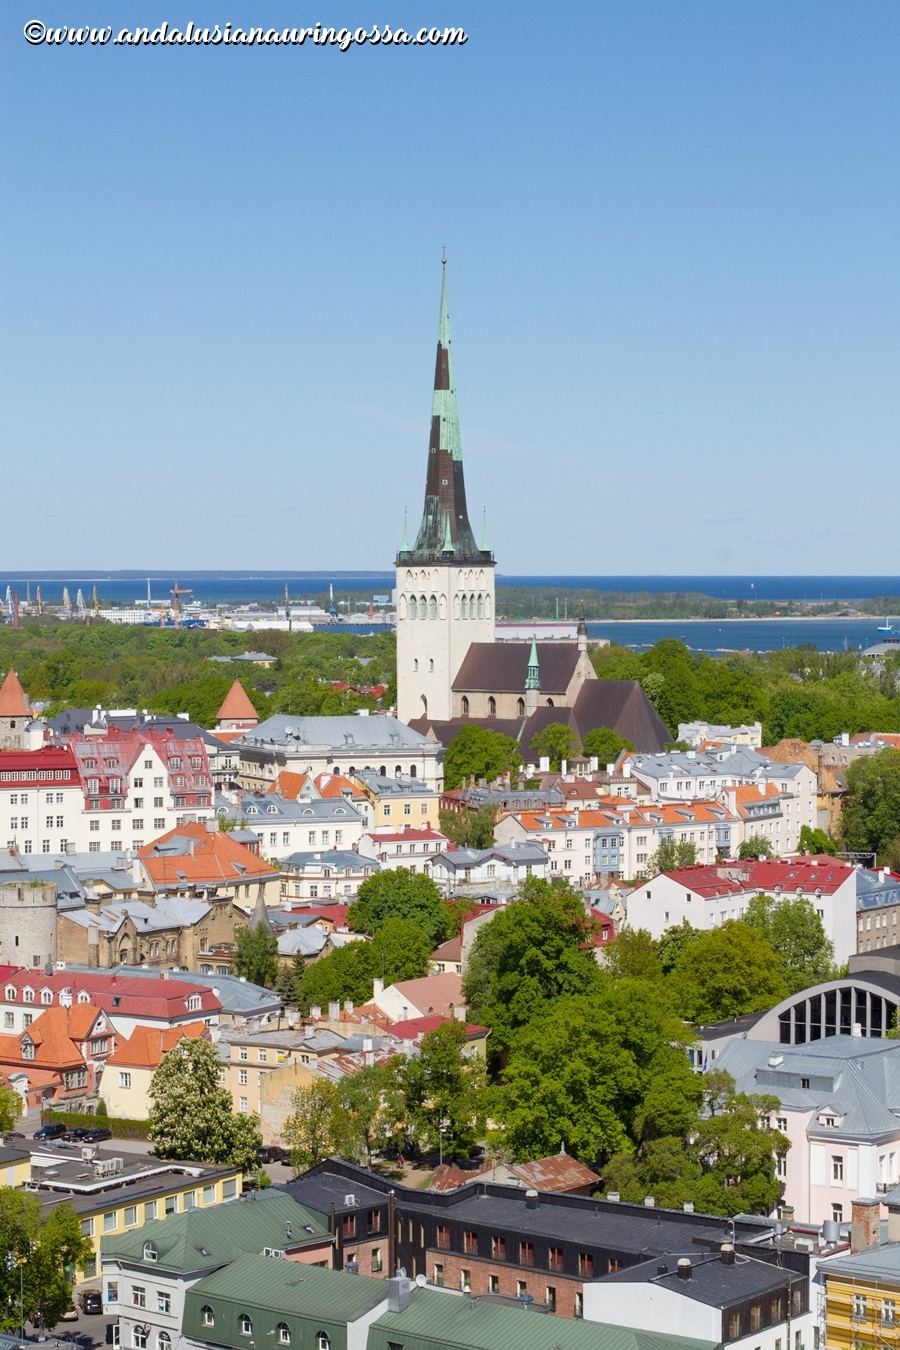 10 fascinating facts about Estonia_10 things you did not know about Estonia_Under the Andalusian Sun_travel blog_4